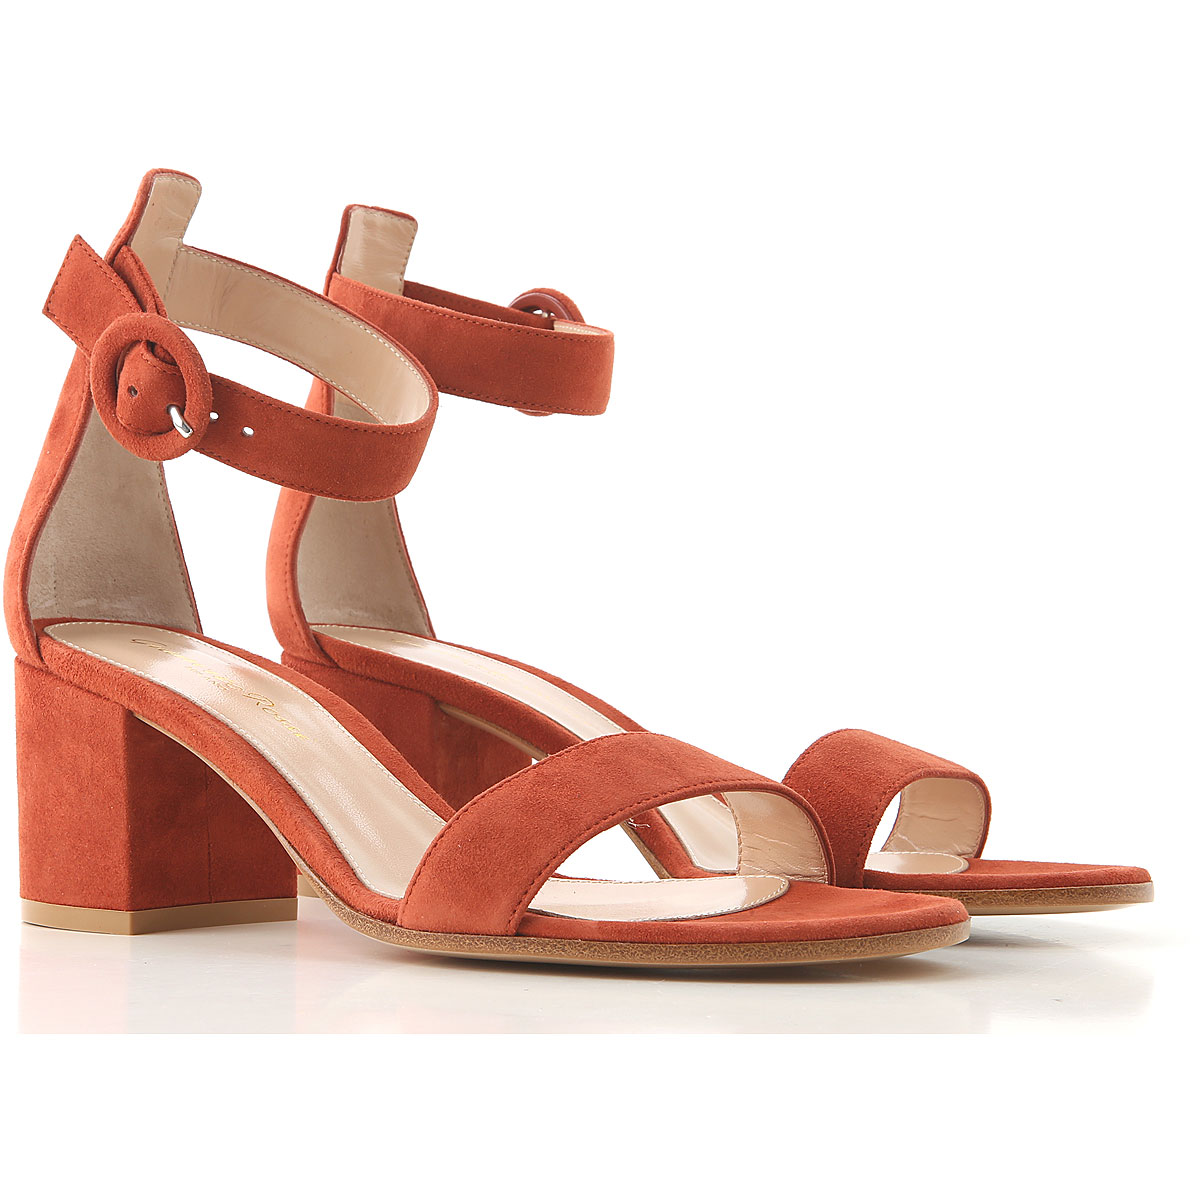 Gianvito Rossi Sandals for Women On Sale, Rust, Suede leather, 2019, 10 11 6 6.5 7 8.5 9 9.5